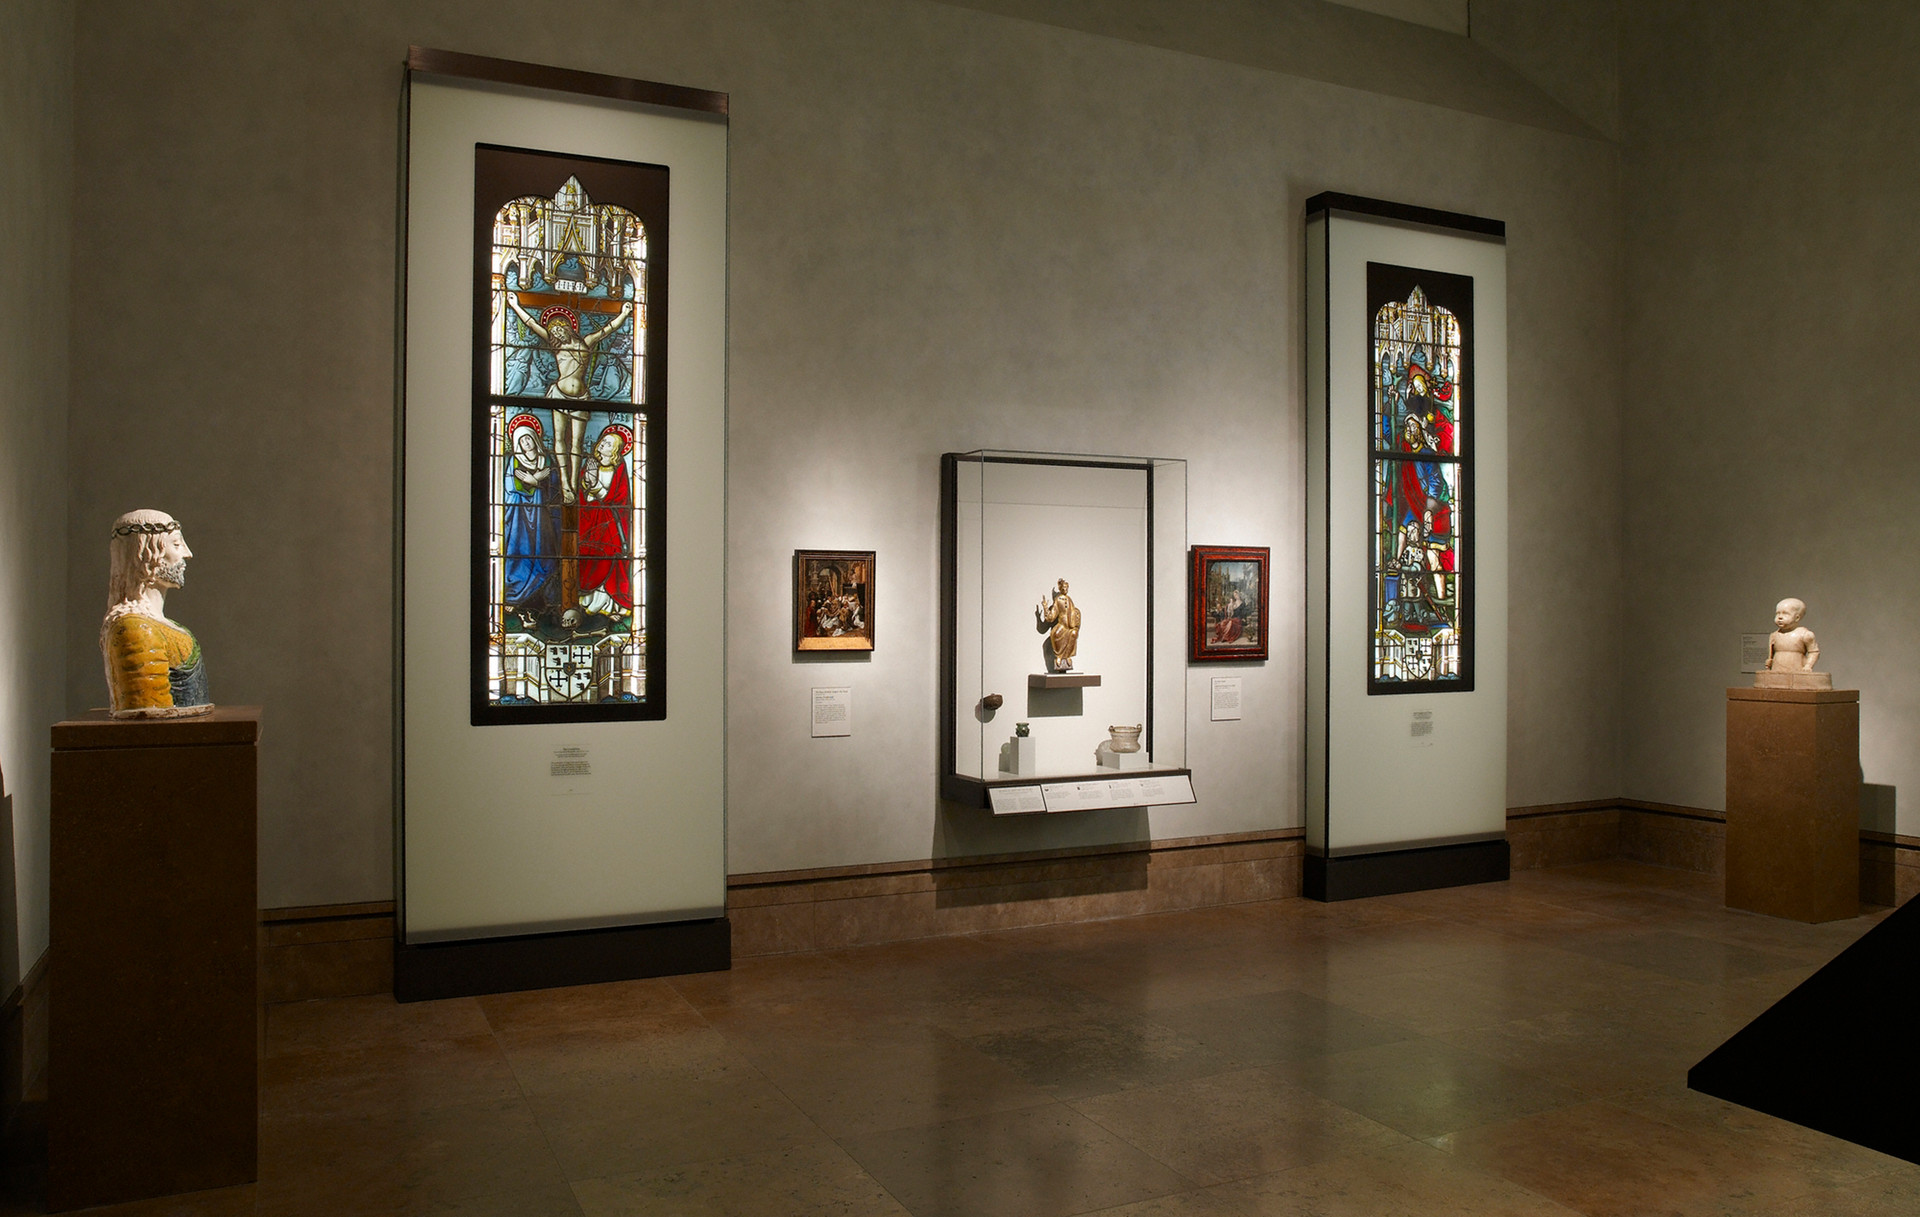 Fabricated in Belgium the twelve foot high display cases for the Getty's collection of stained glass featured frosted glass facades and state-of-the-art fiber optic lighting.